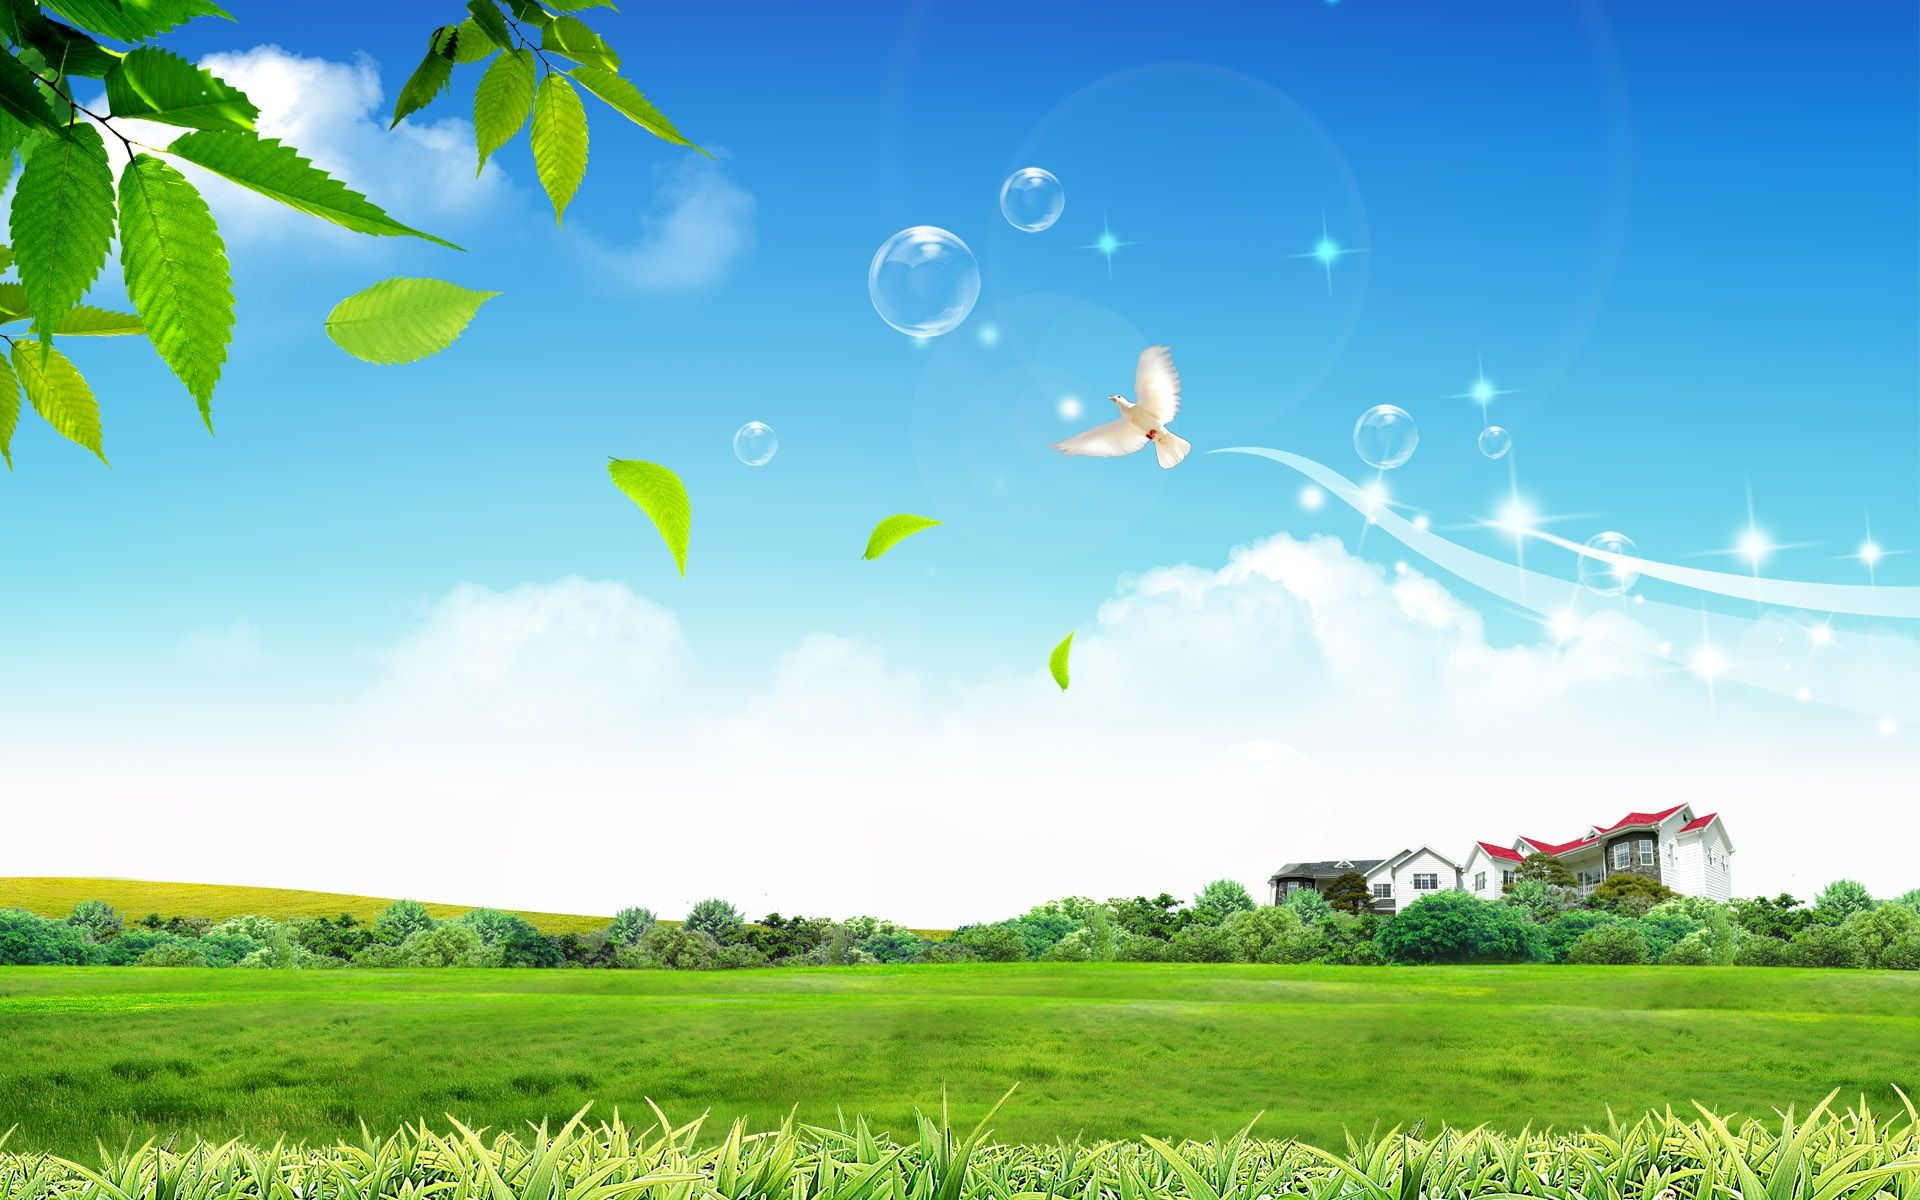 Its My Life Wallpapers In Jpg Format For Free Download Scenery Wallpaper Green Nature Wallpaper Scenery Background